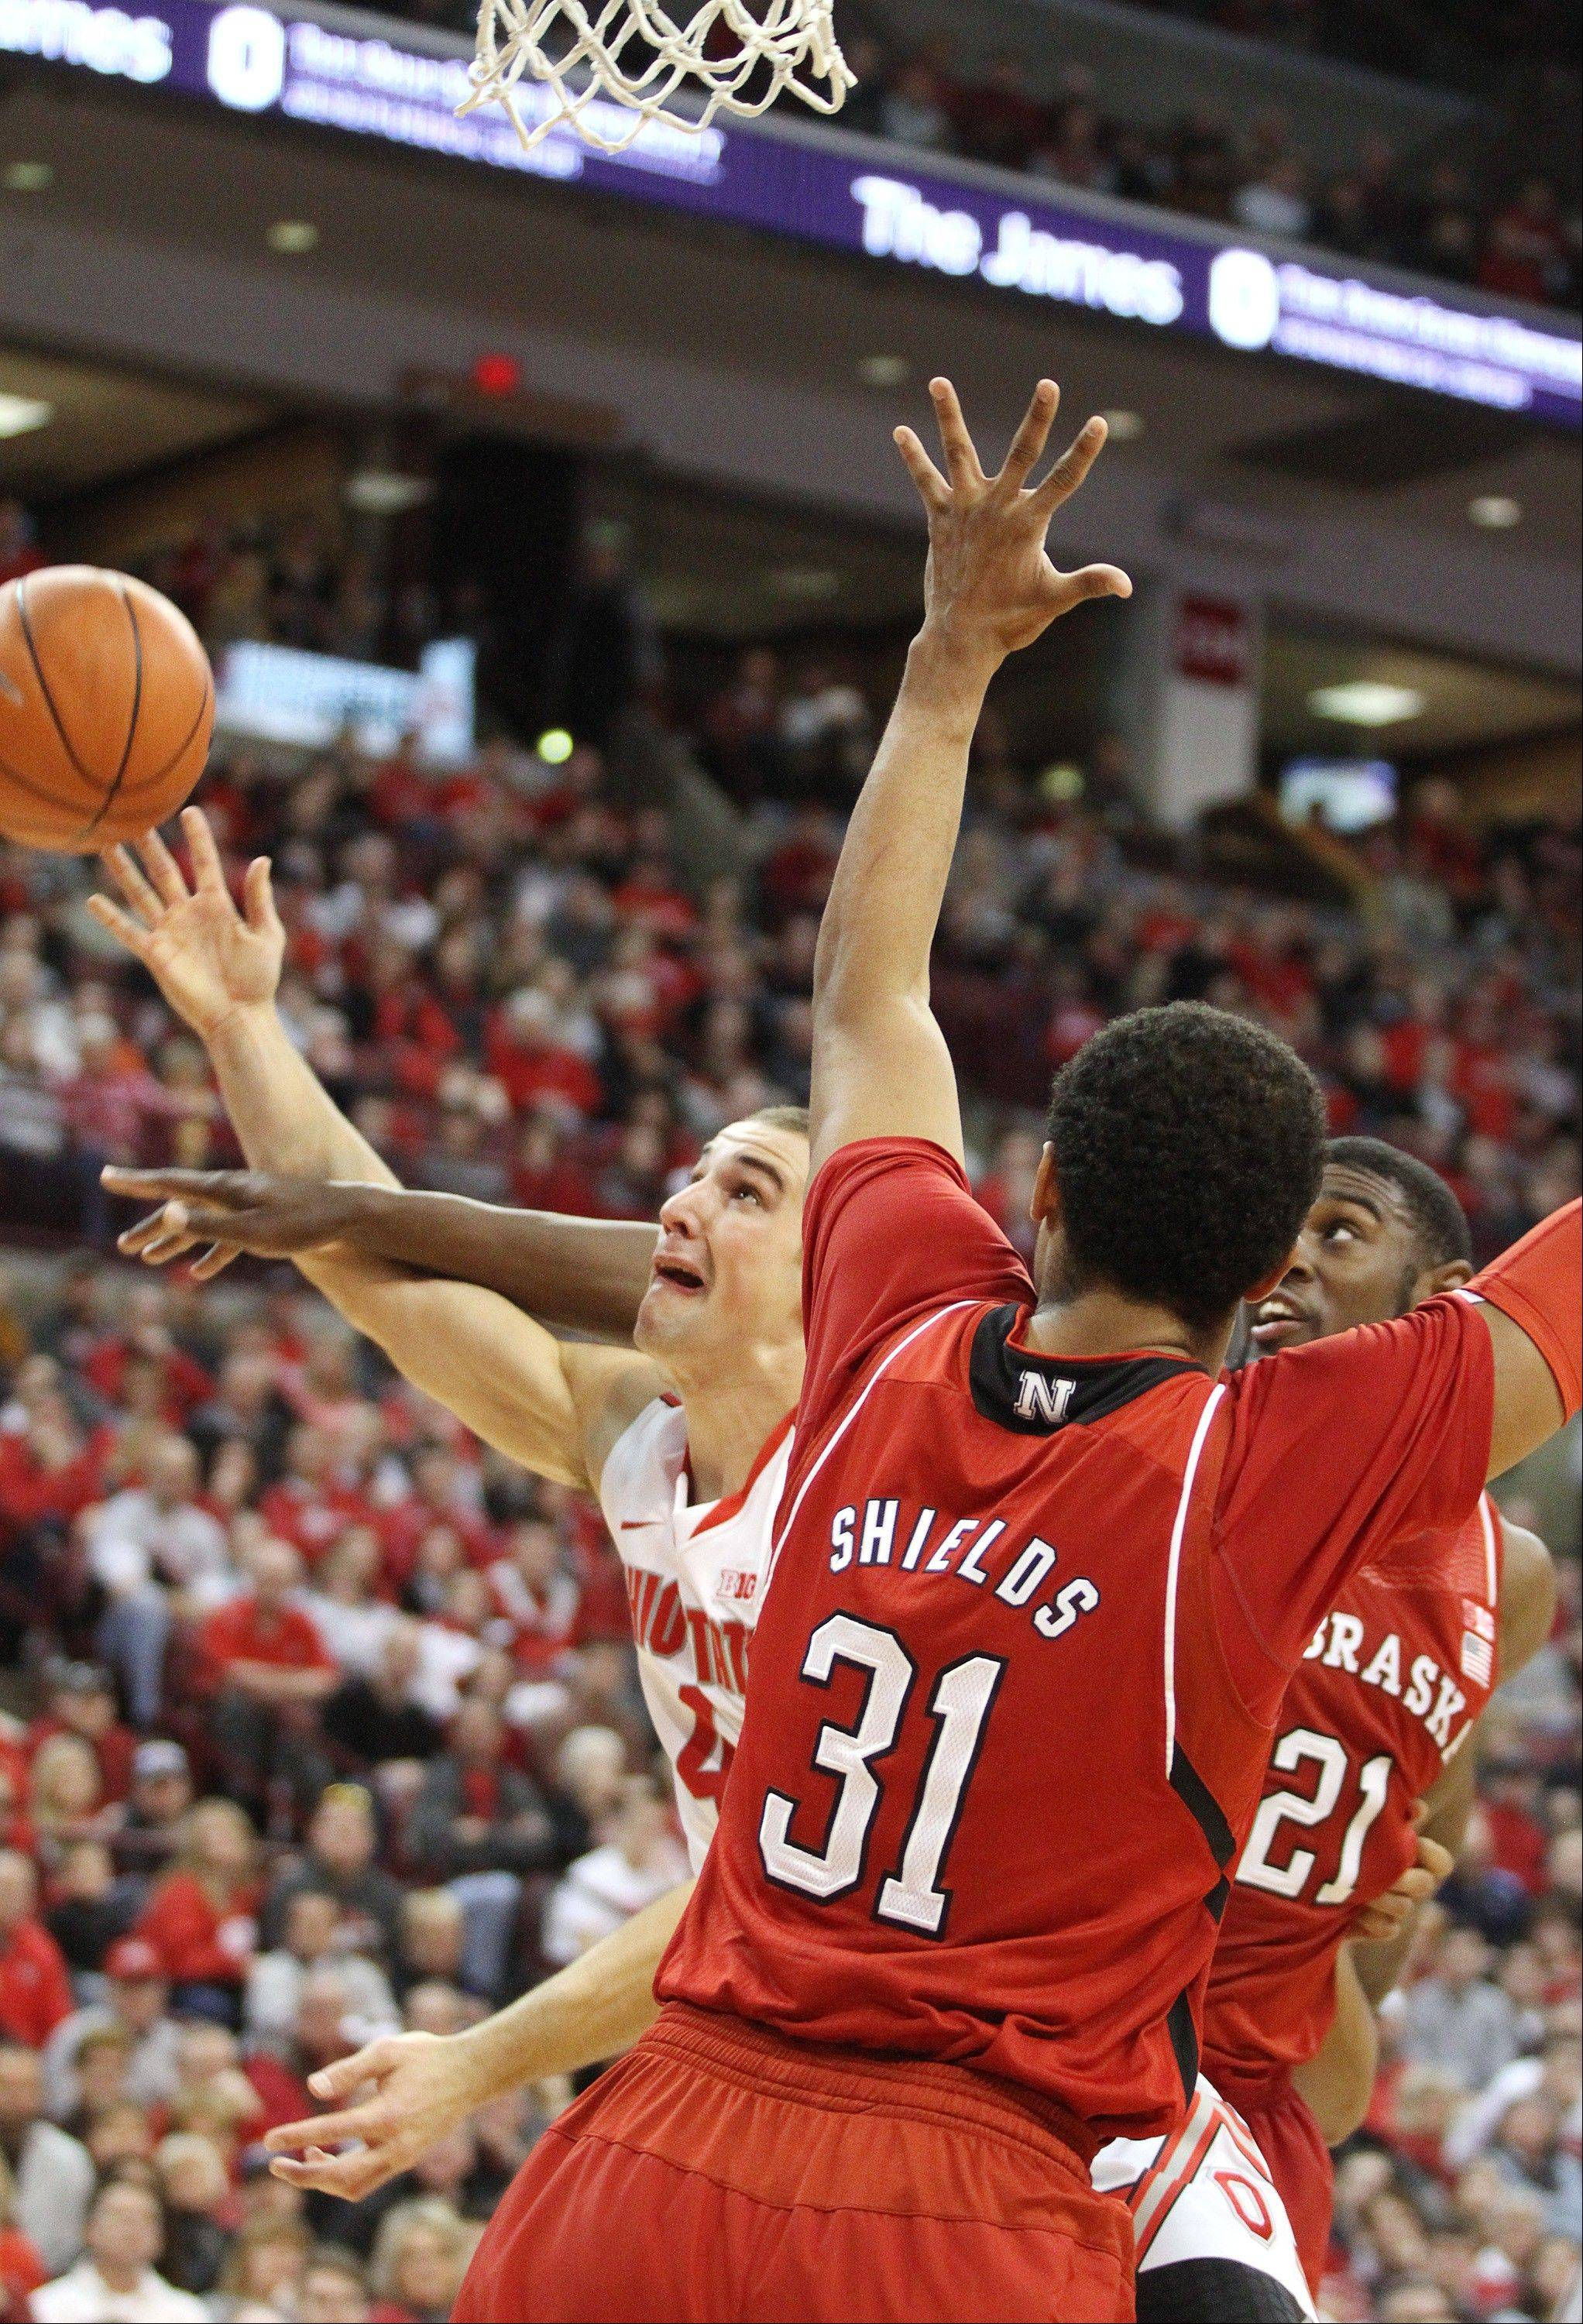 Ohio State's Aaron Craft, left, is fouled by Nebraska's Leslee Smith (21) during the first half of an NCAA college basketball game Saturday, Jan. 4, 2014, in Columbus, Ohio. Nebraska's Shavon Shields (31) defends on the play. (AP Photo/Mike Munden)